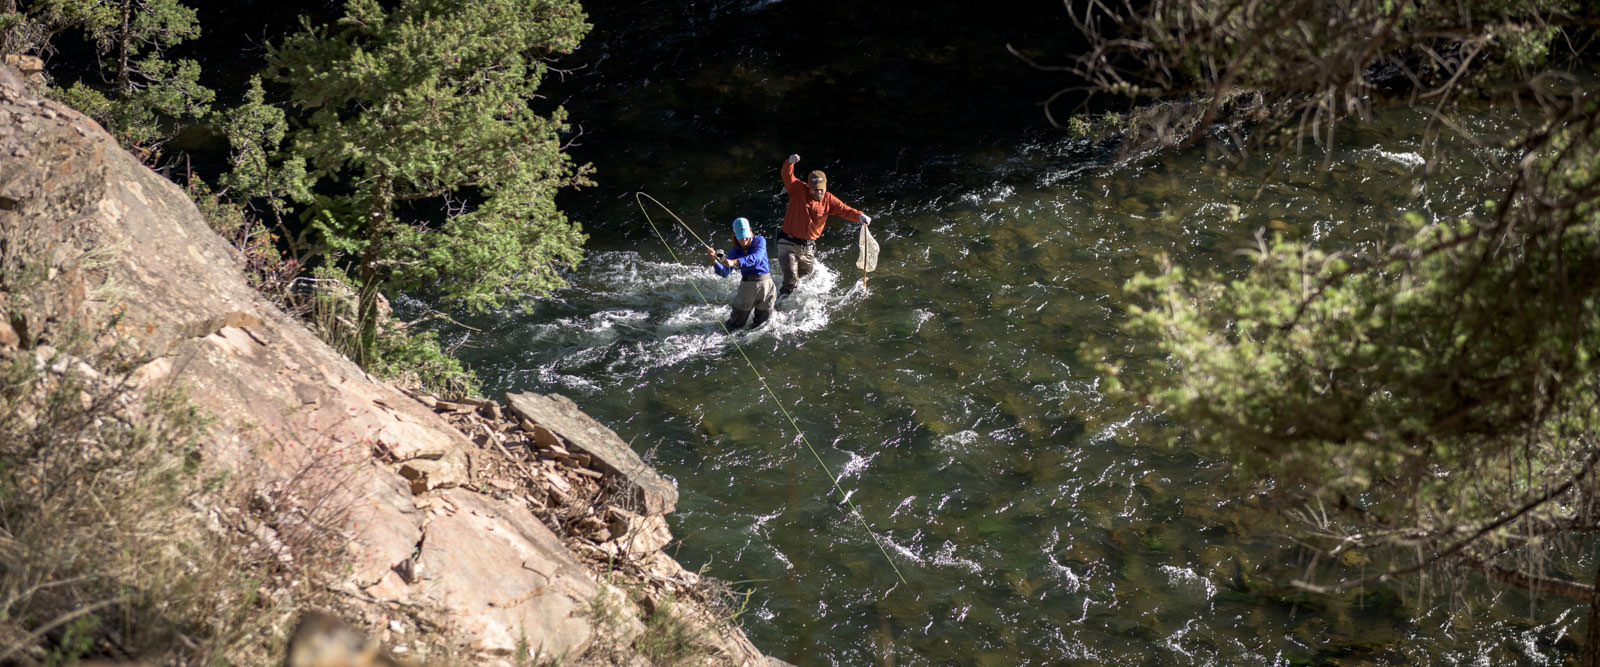 Montana fly fishing information on rivers guides and lodges for Montana fishing lodges